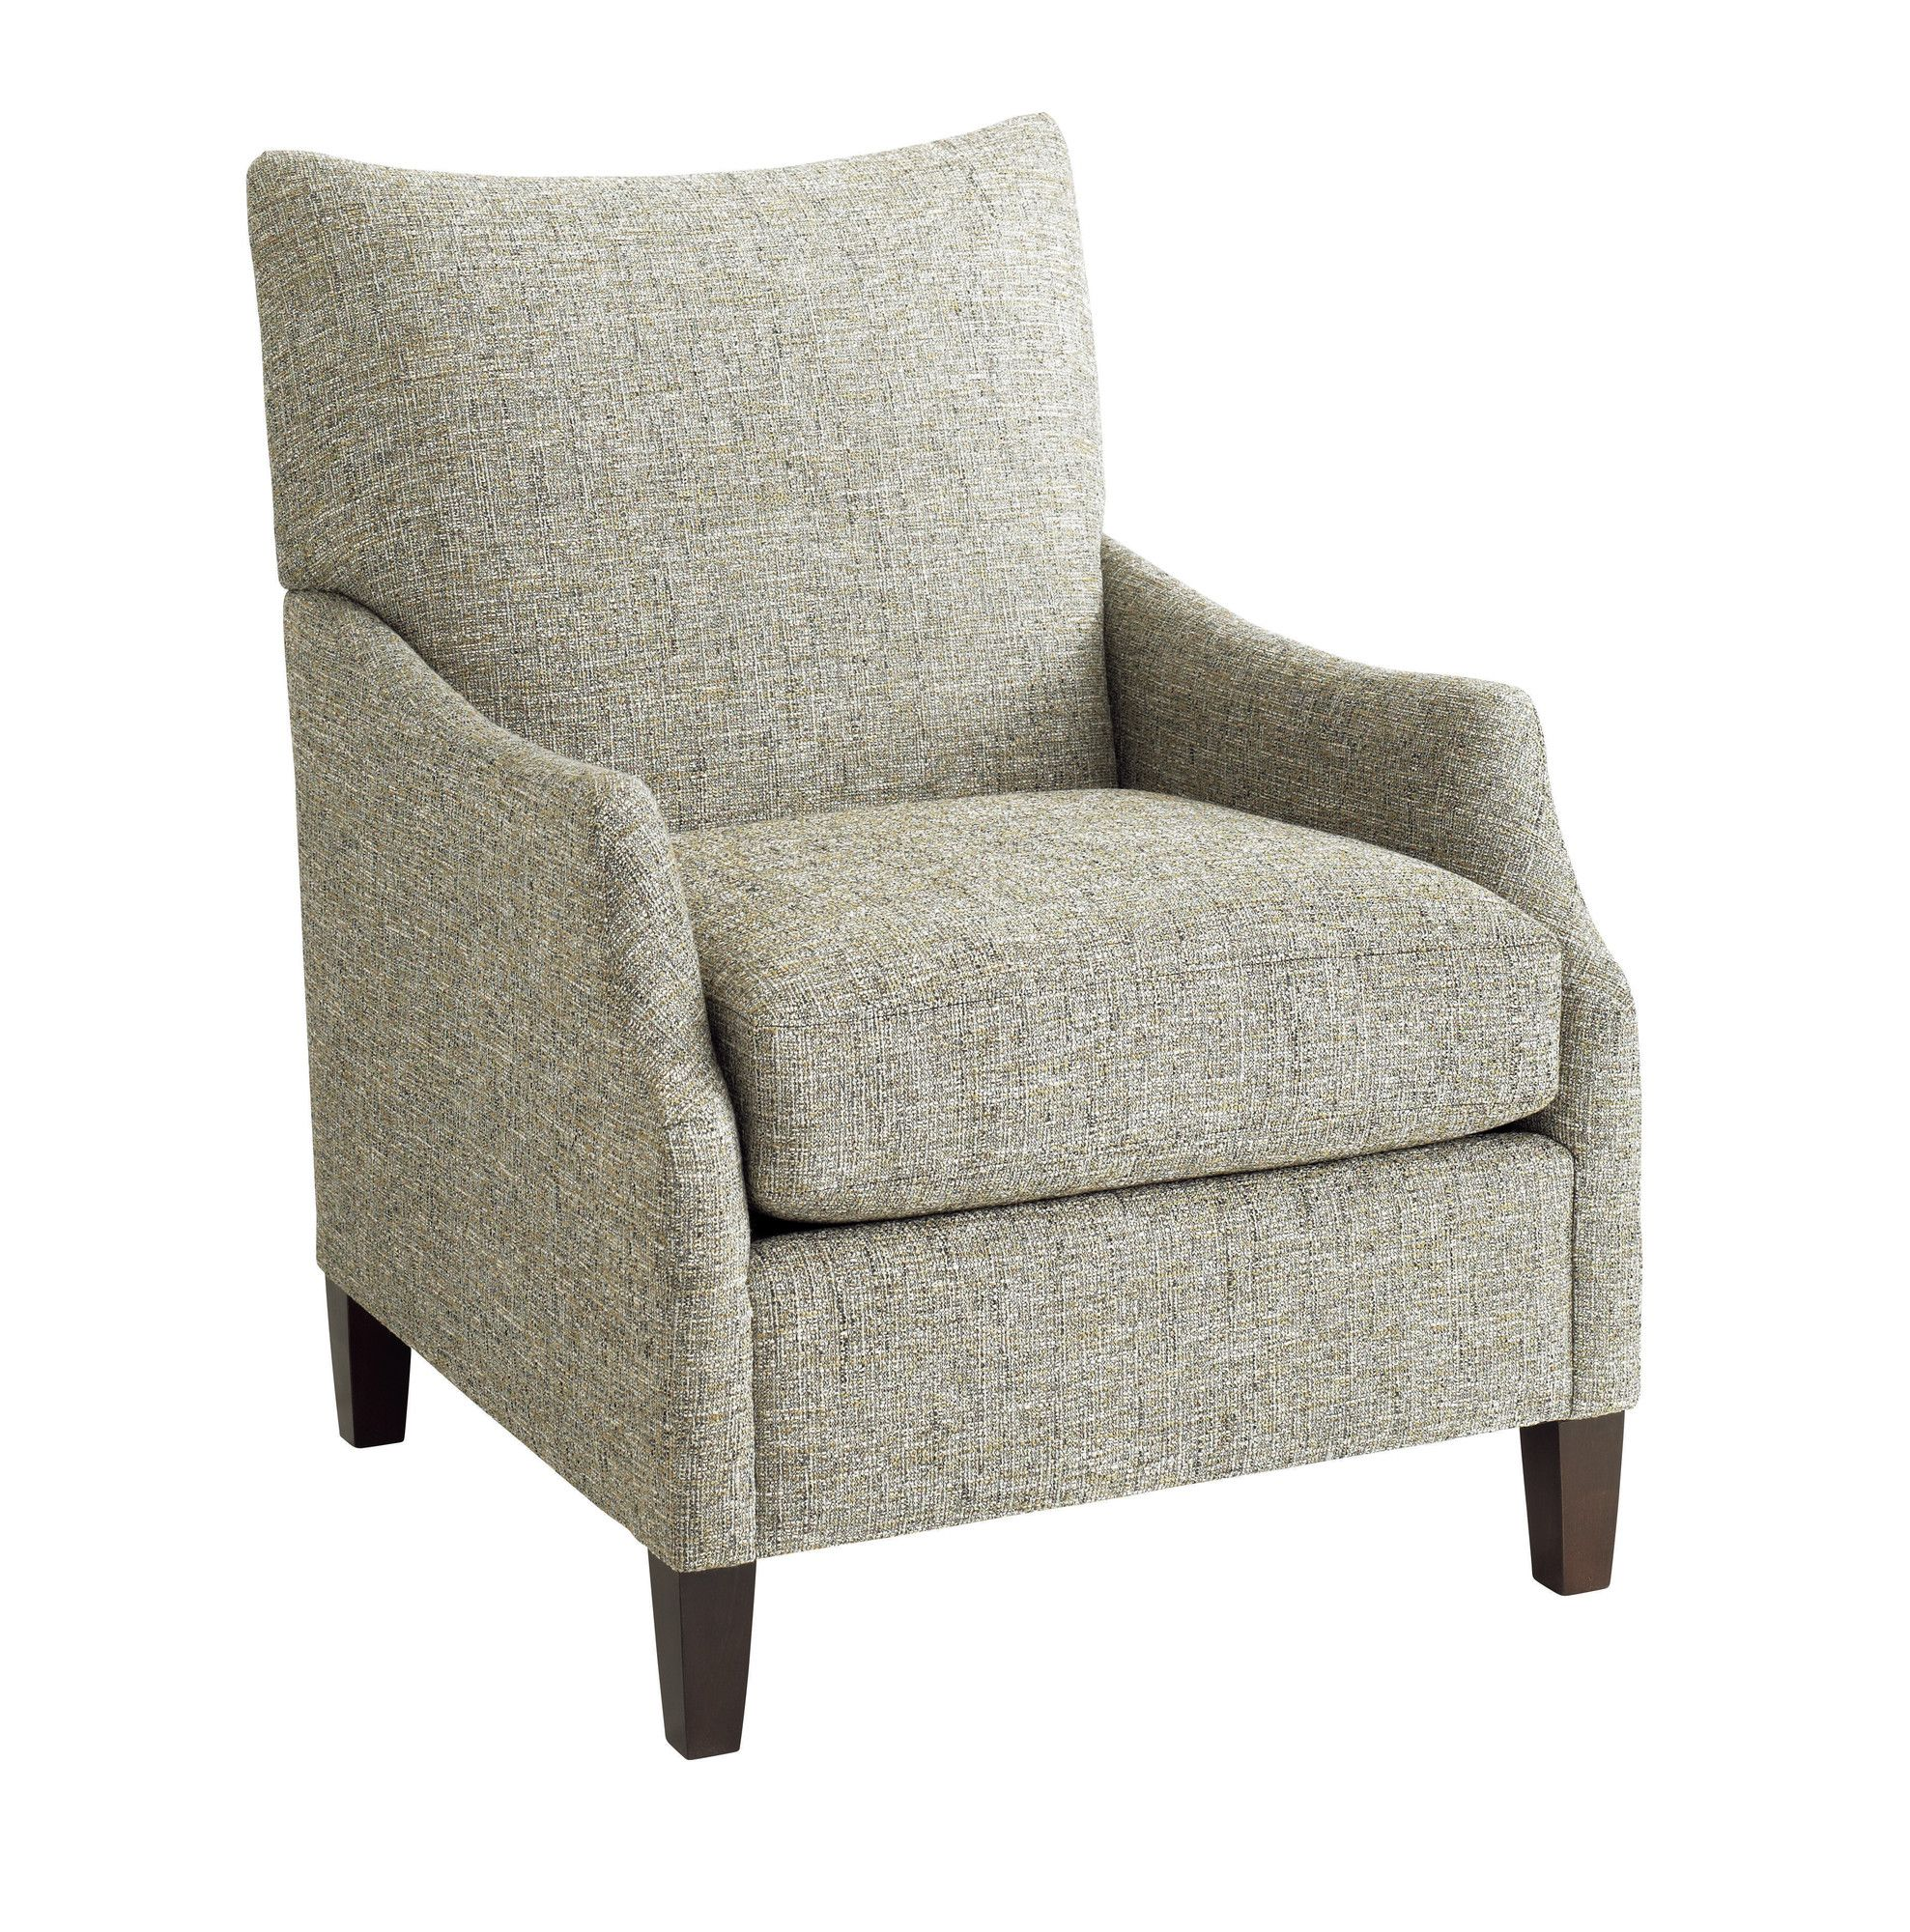 Thompson Arm Chair Wayfair 29 in w 879 in Mineral